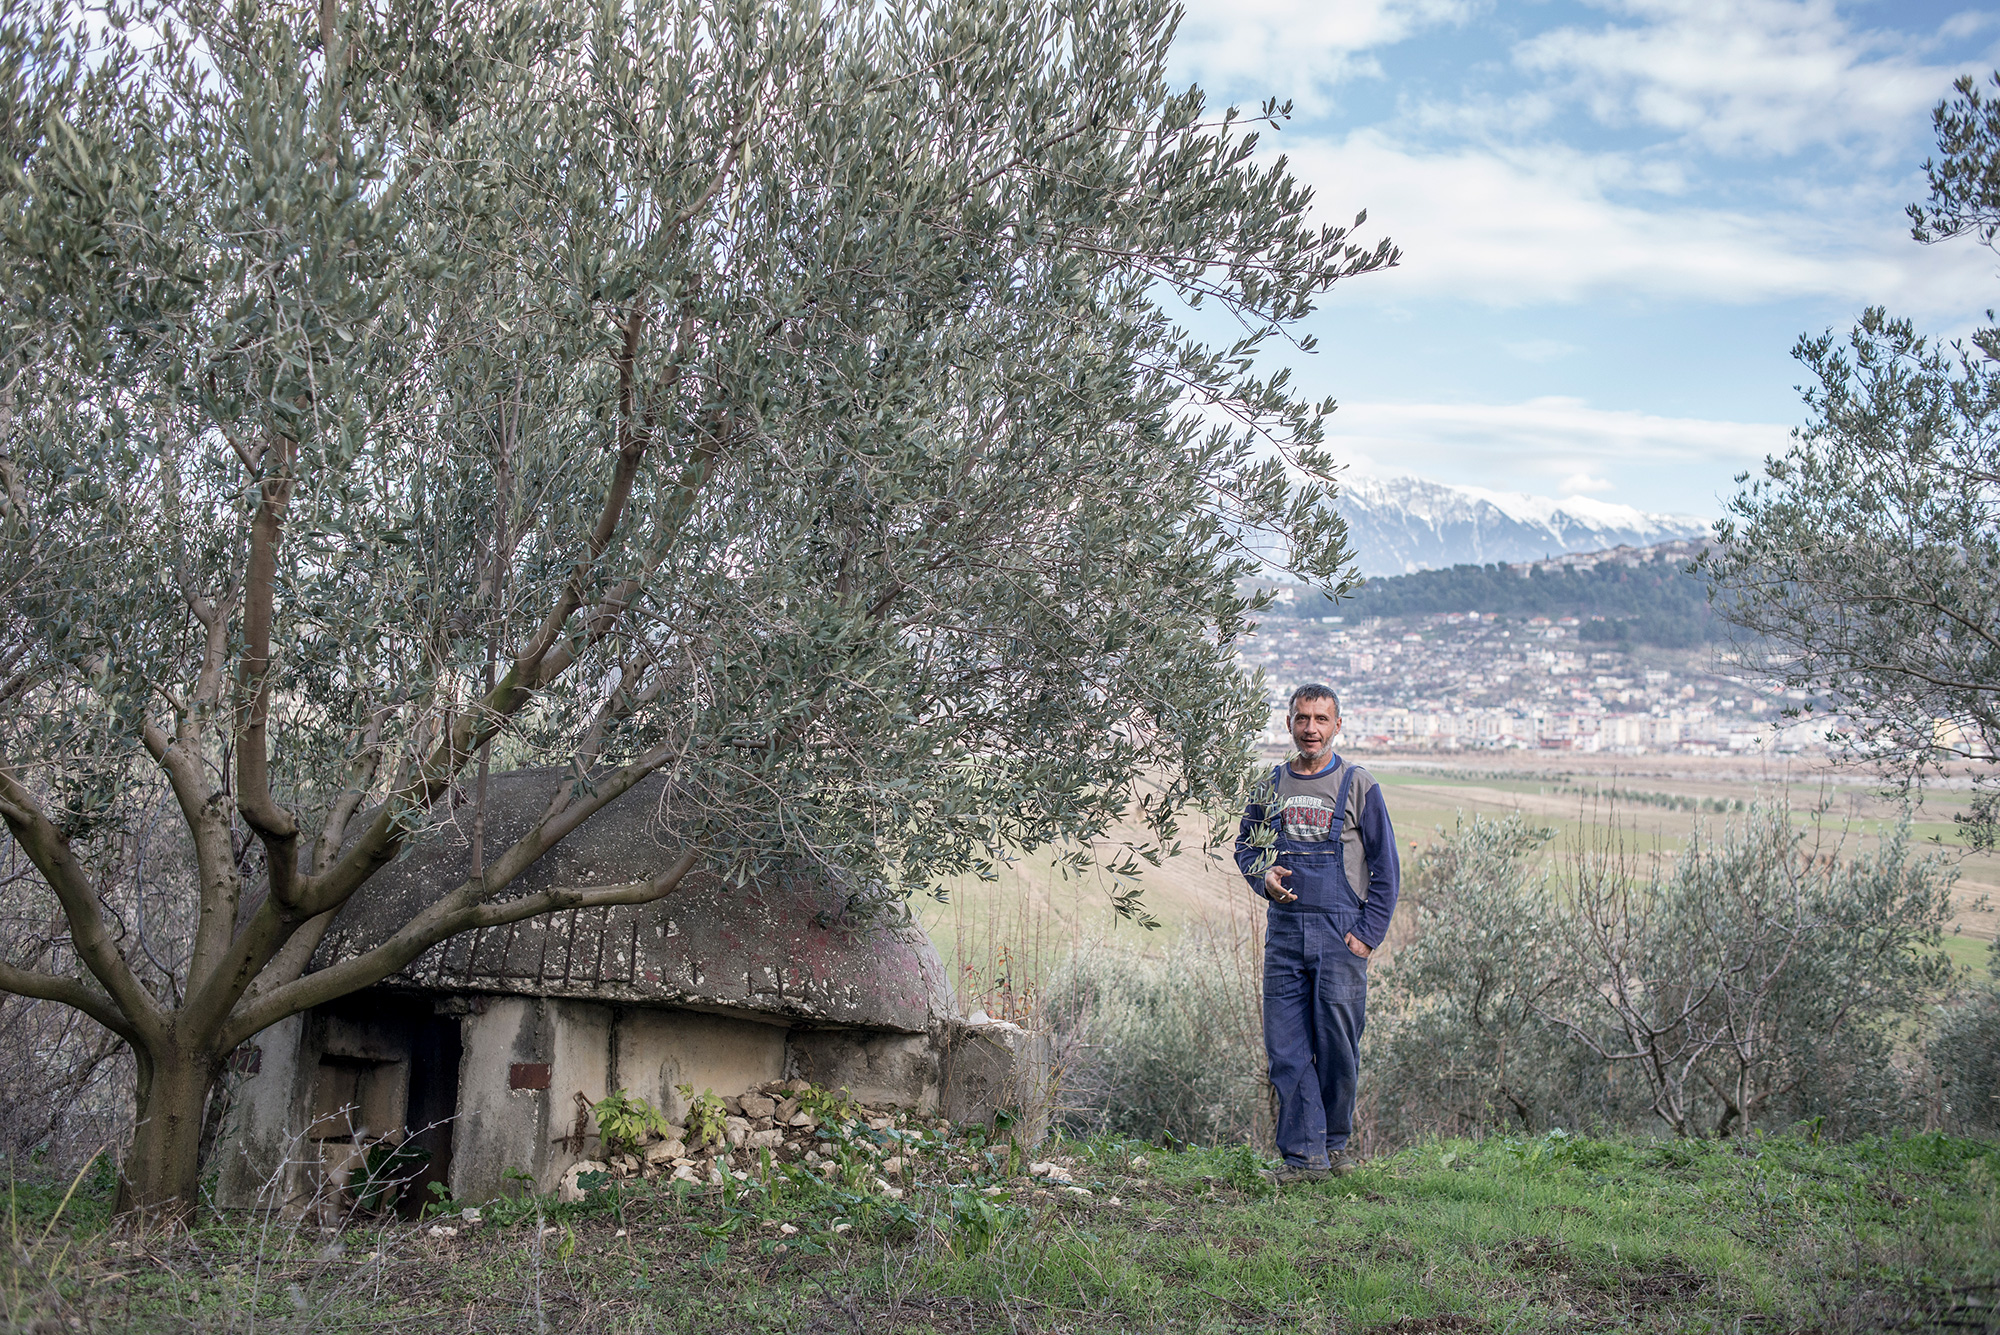 The owner of the orchard stands near the bunker, Ura Vajgurore, Albania